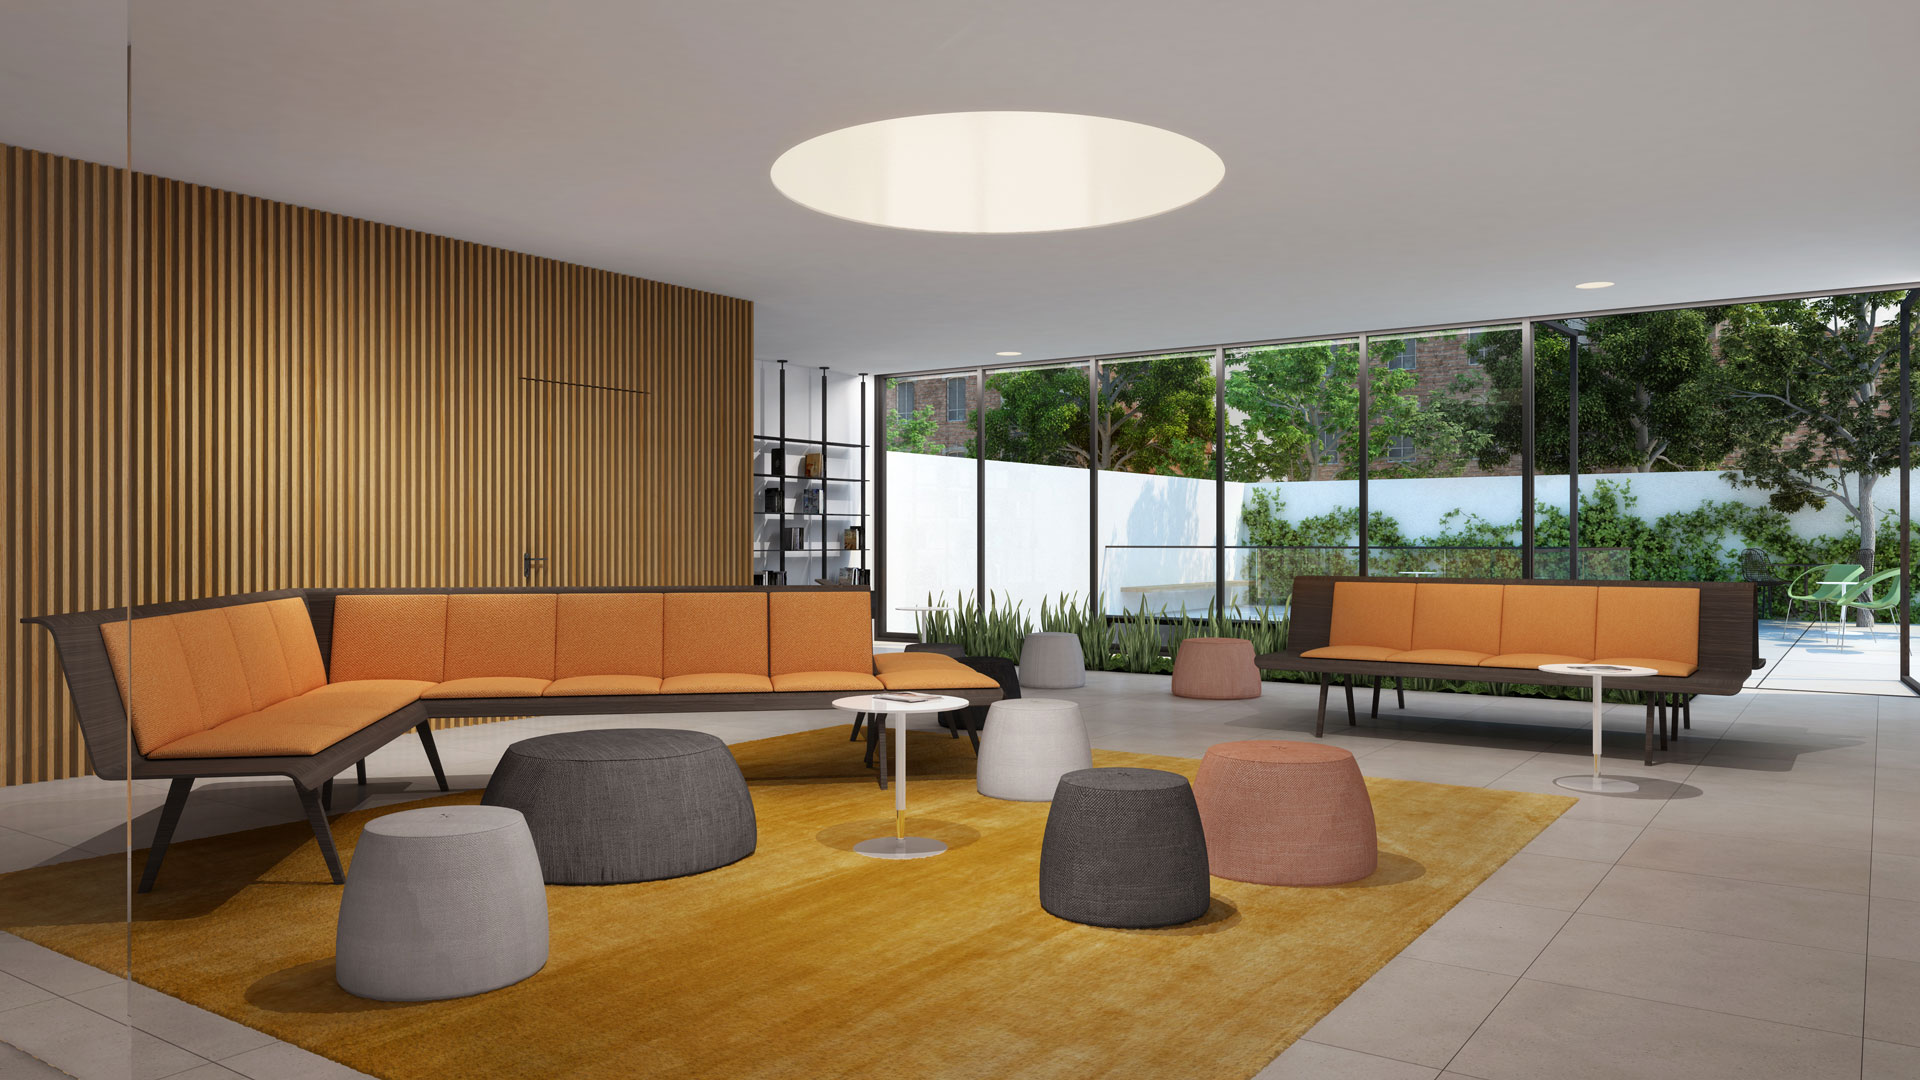 Rendering of lobby spaces at 1458-1466 Flatbush Ave - Bar Orian